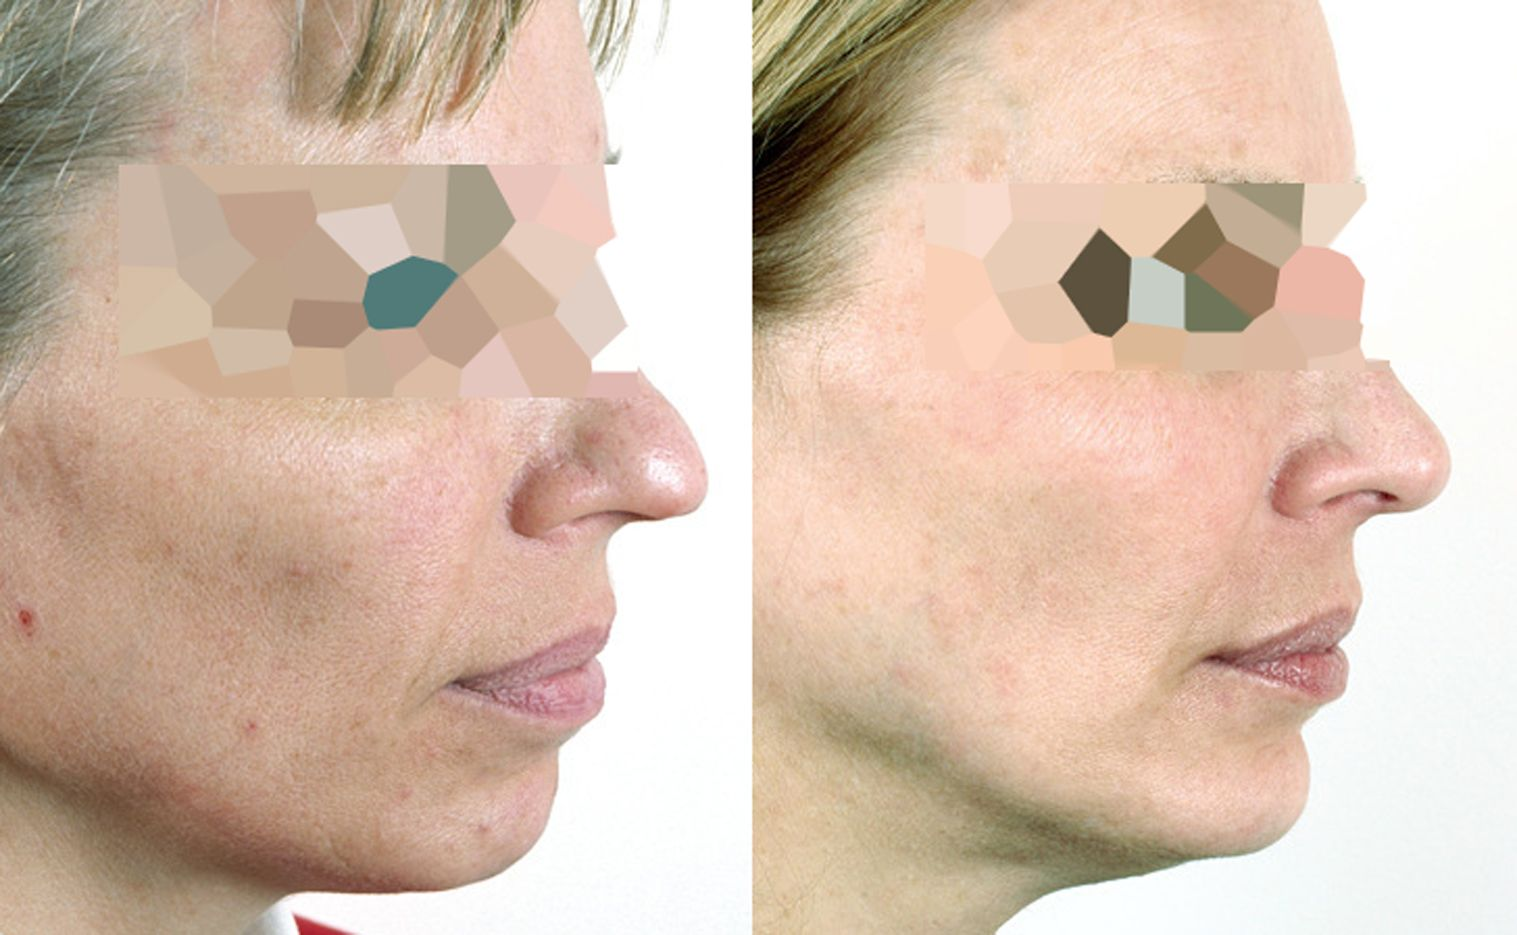 Chin augmentation with hyaluronic acid - Picture 3